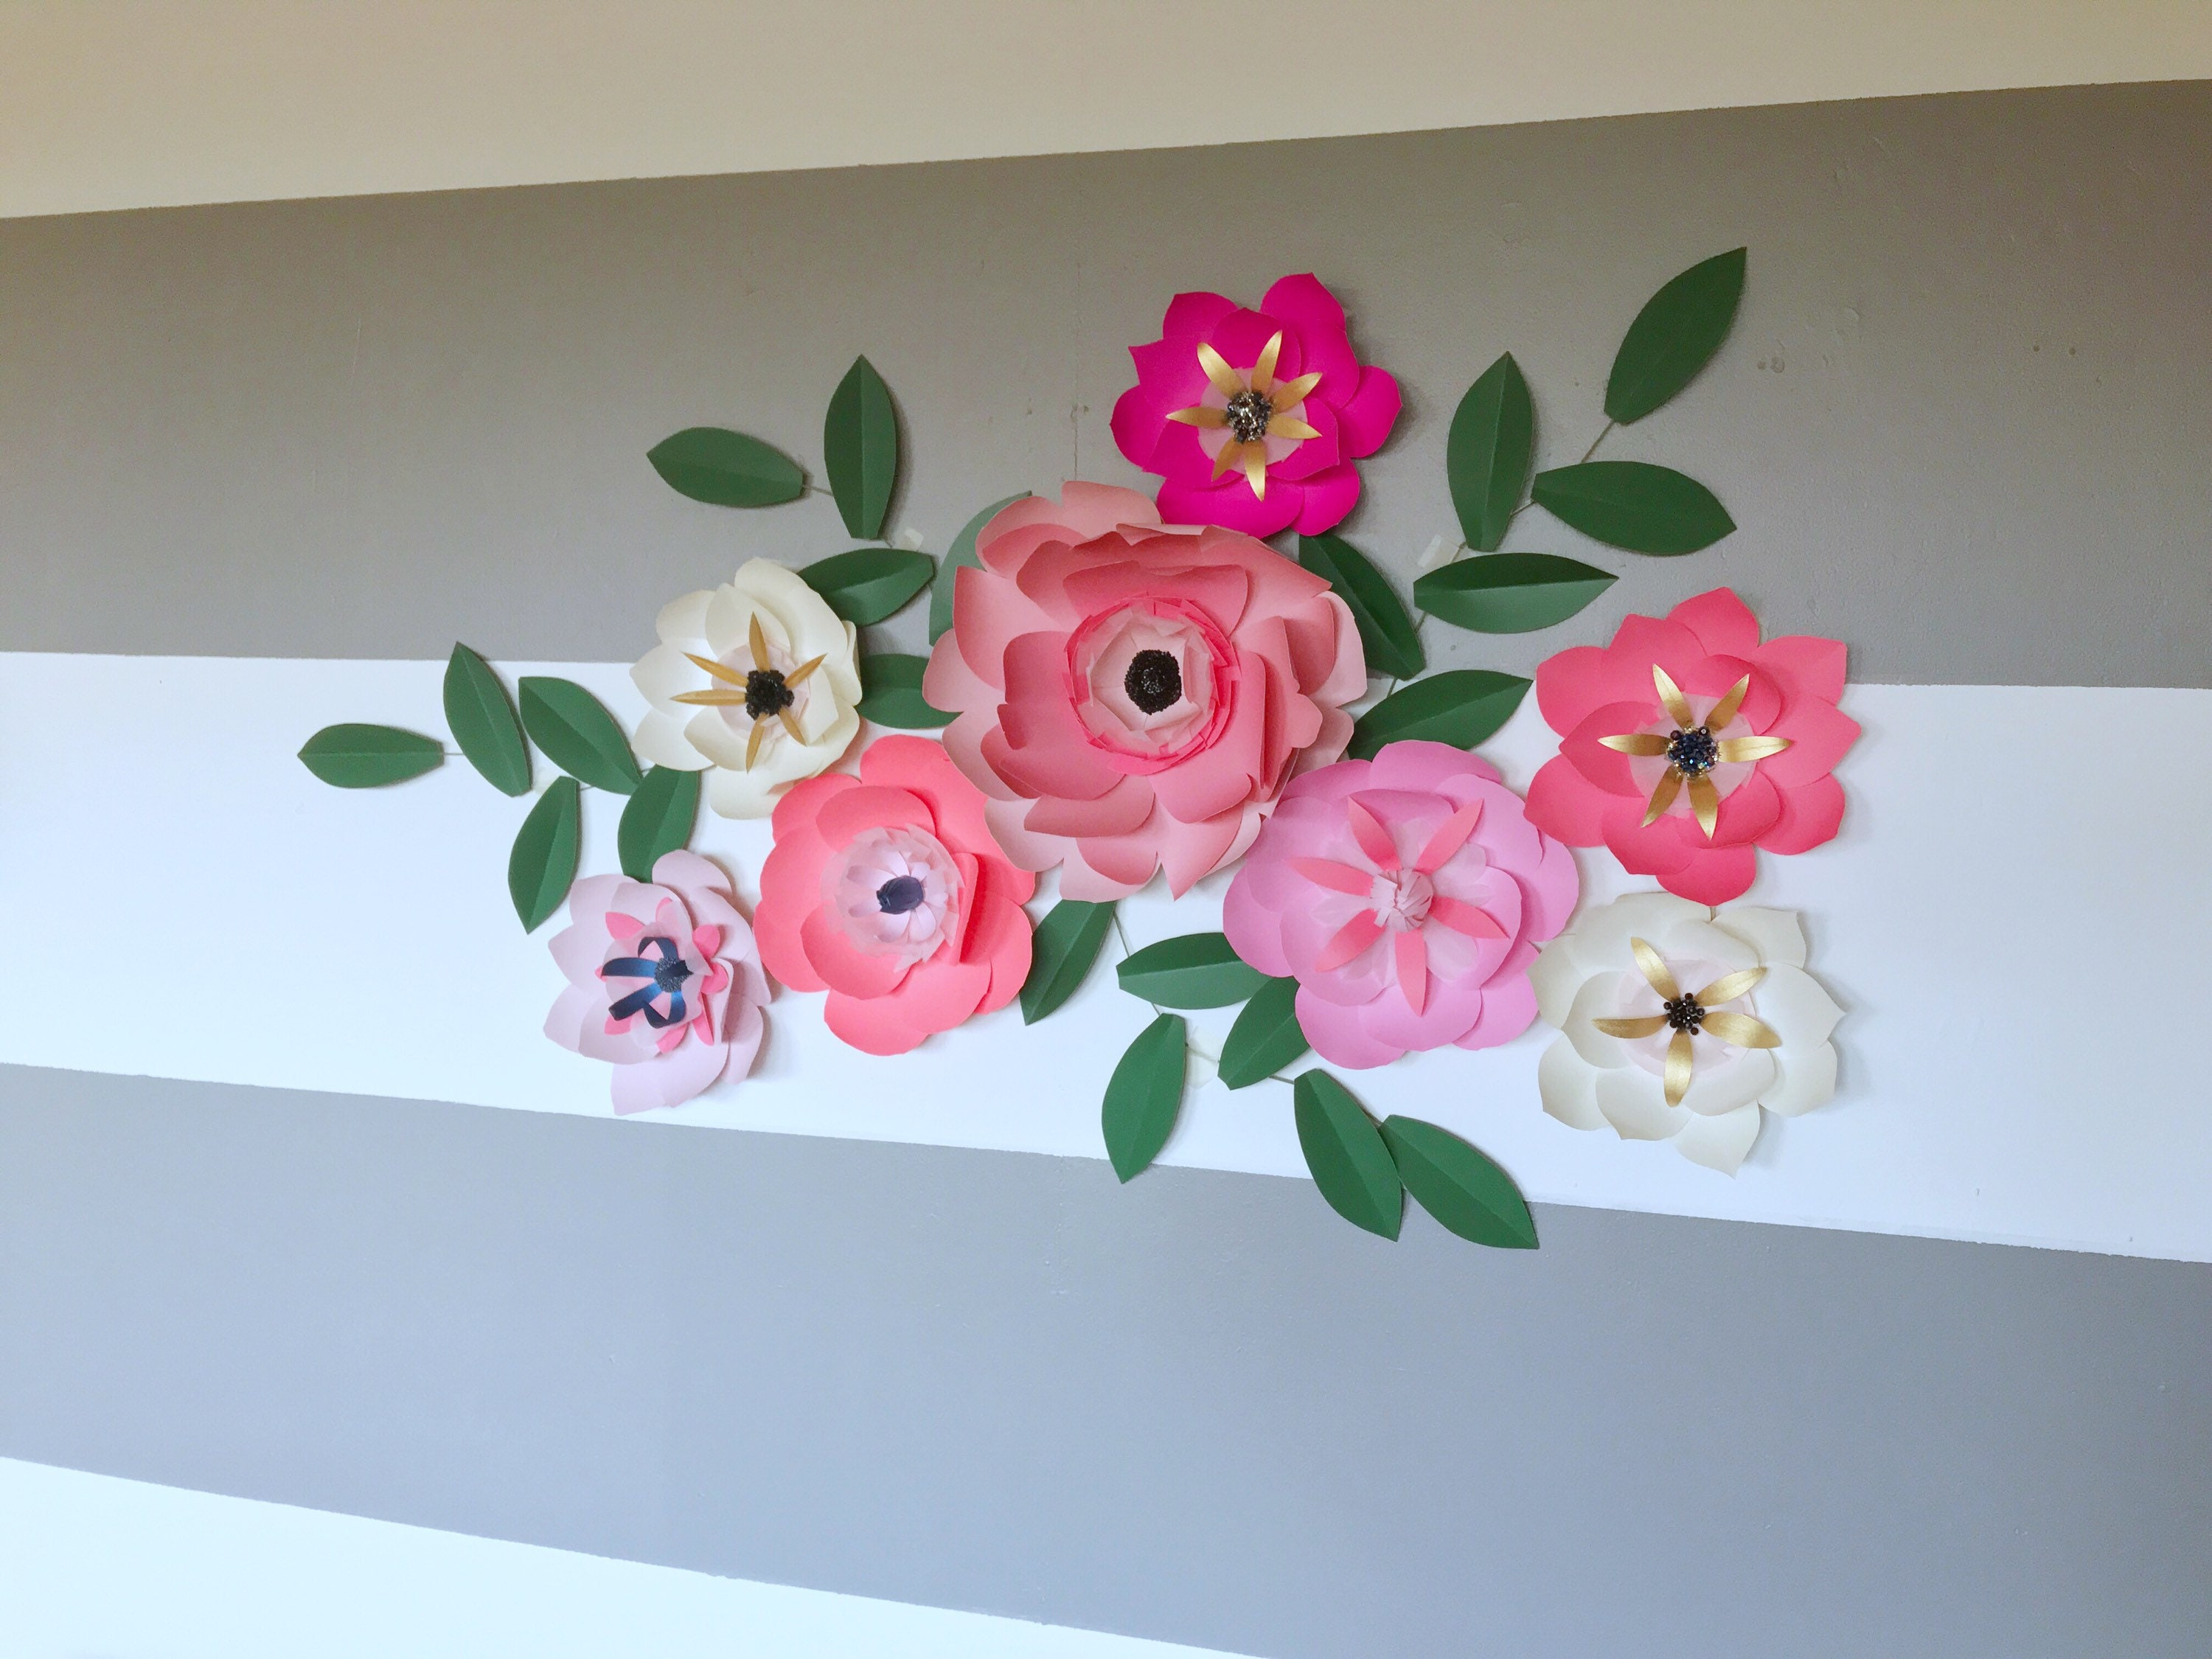 ribbons pin pink picture rose hanging d interior for decor silk wall roses embroirey chic with chebby